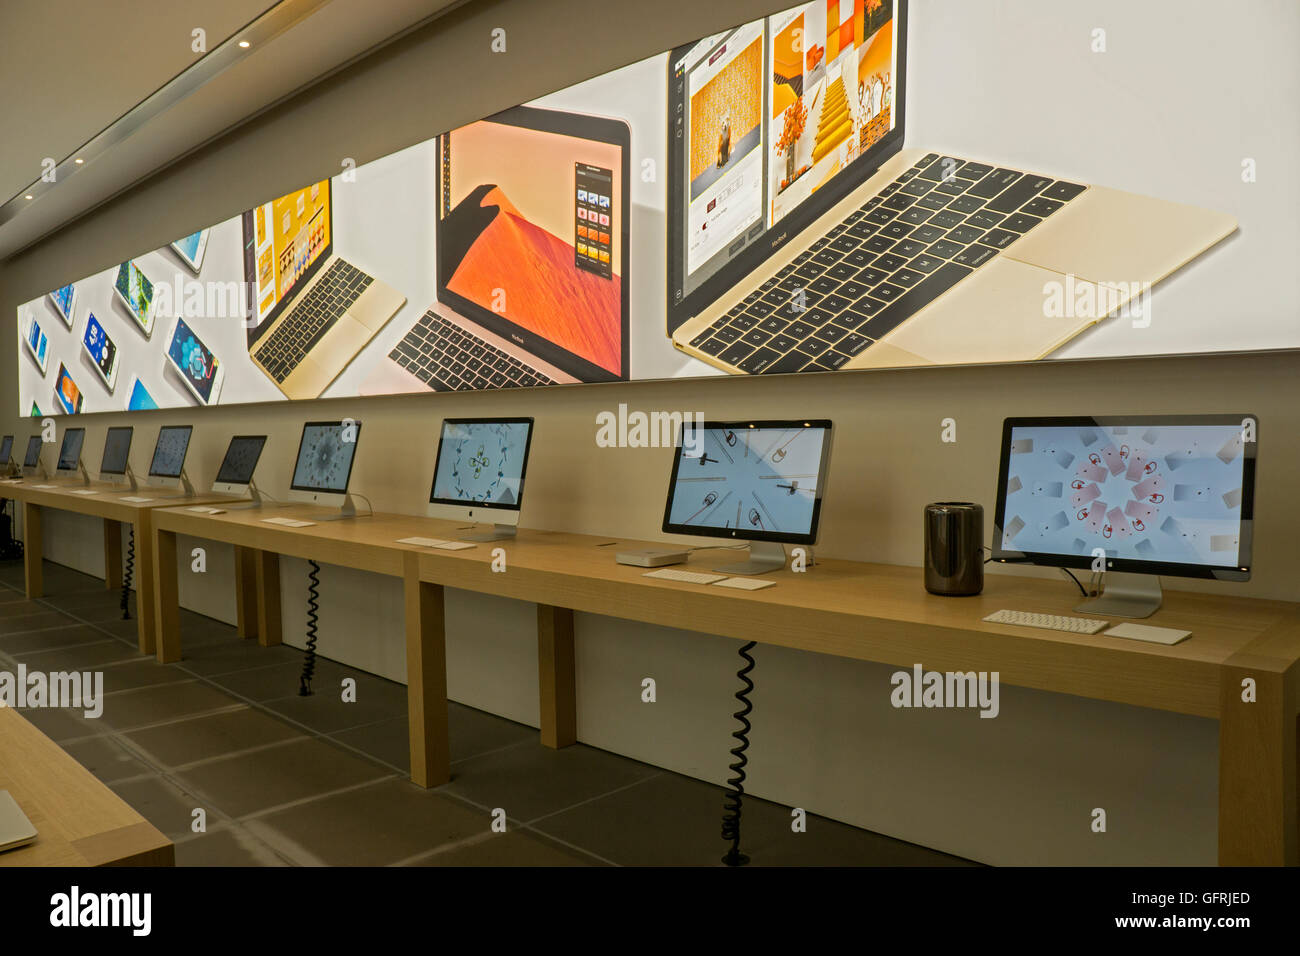 Computers for sale at the Apple store on Prince Street in the Soho section of lower Manhattan, New York City. - Stock Image